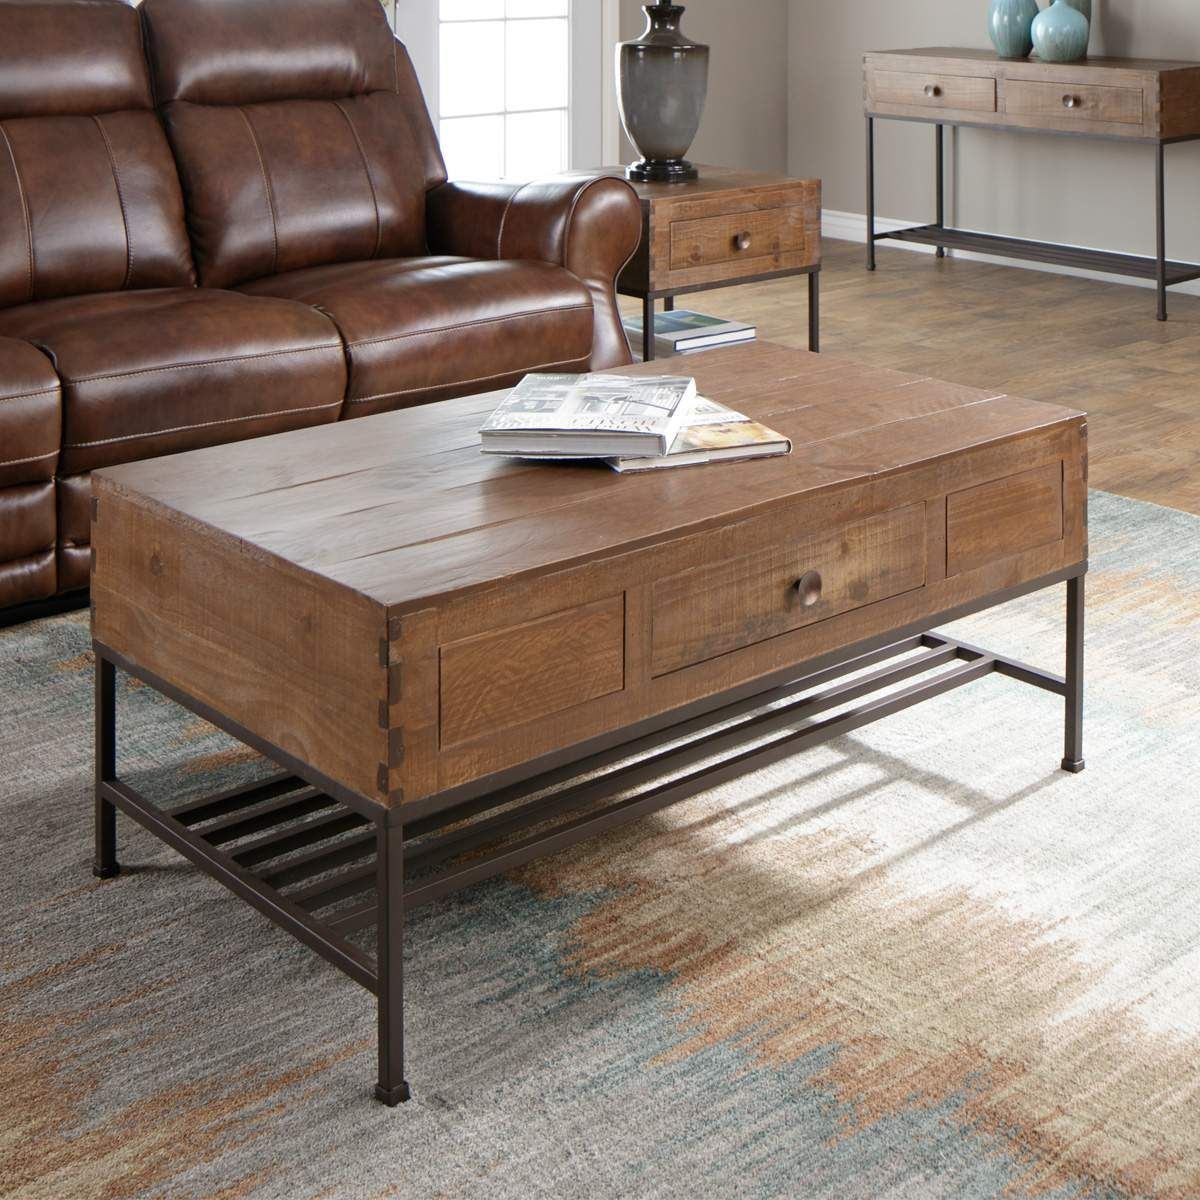 Groovy 198 Havanna Cocktail Table In Natual Jeromes Furniture Pabps2019 Chair Design Images Pabps2019Com